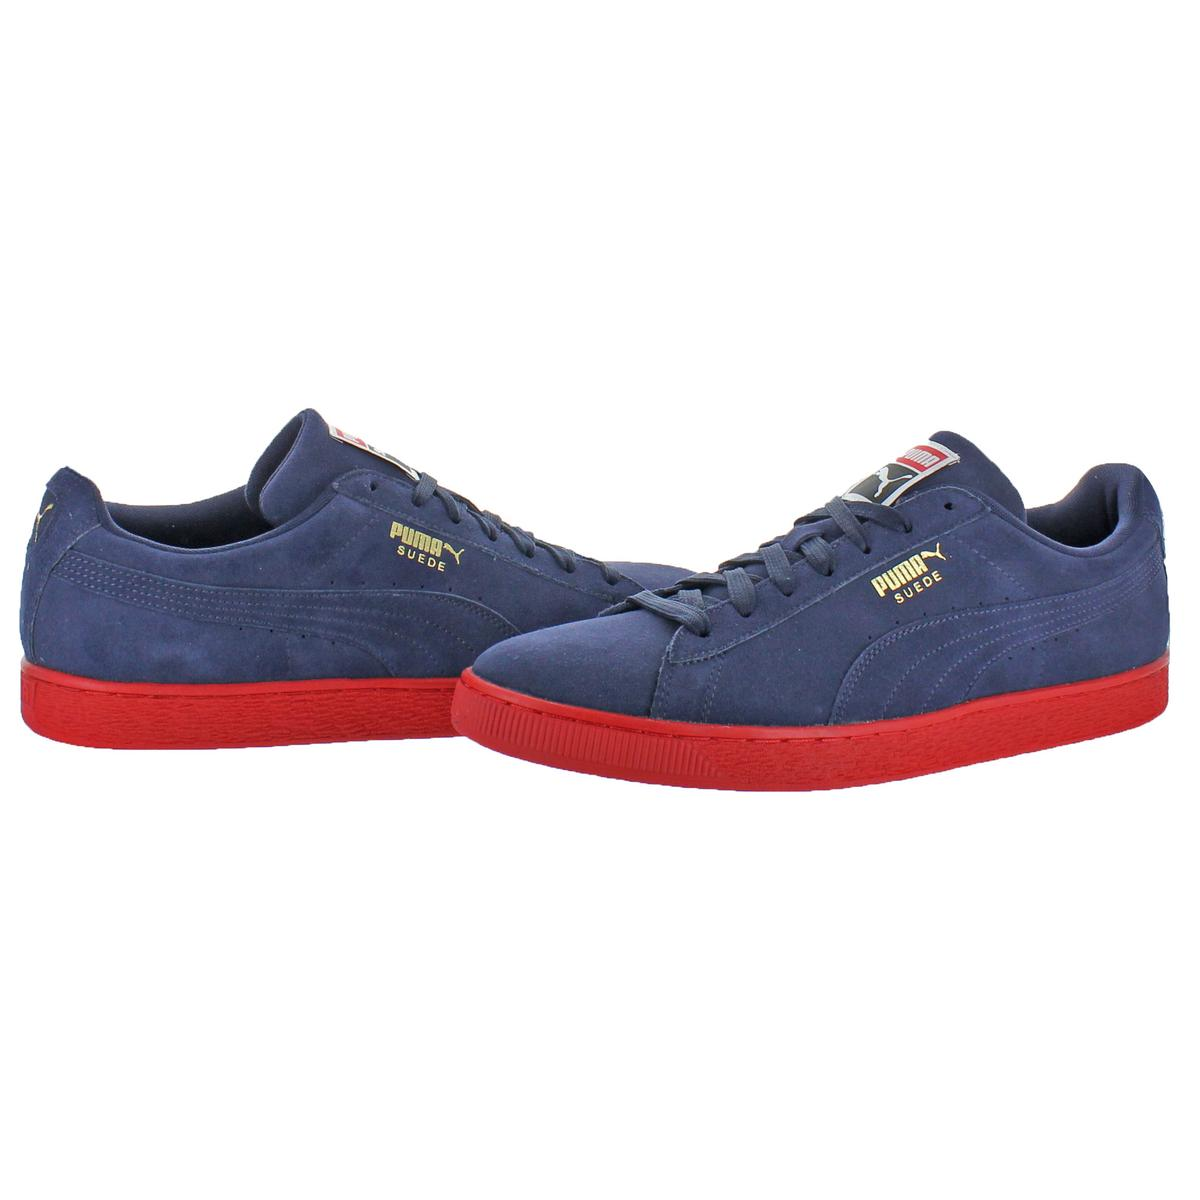 Puma-Suede-Classic-Men-039-s-Fashion-Sneakers-Shoes thumbnail 30